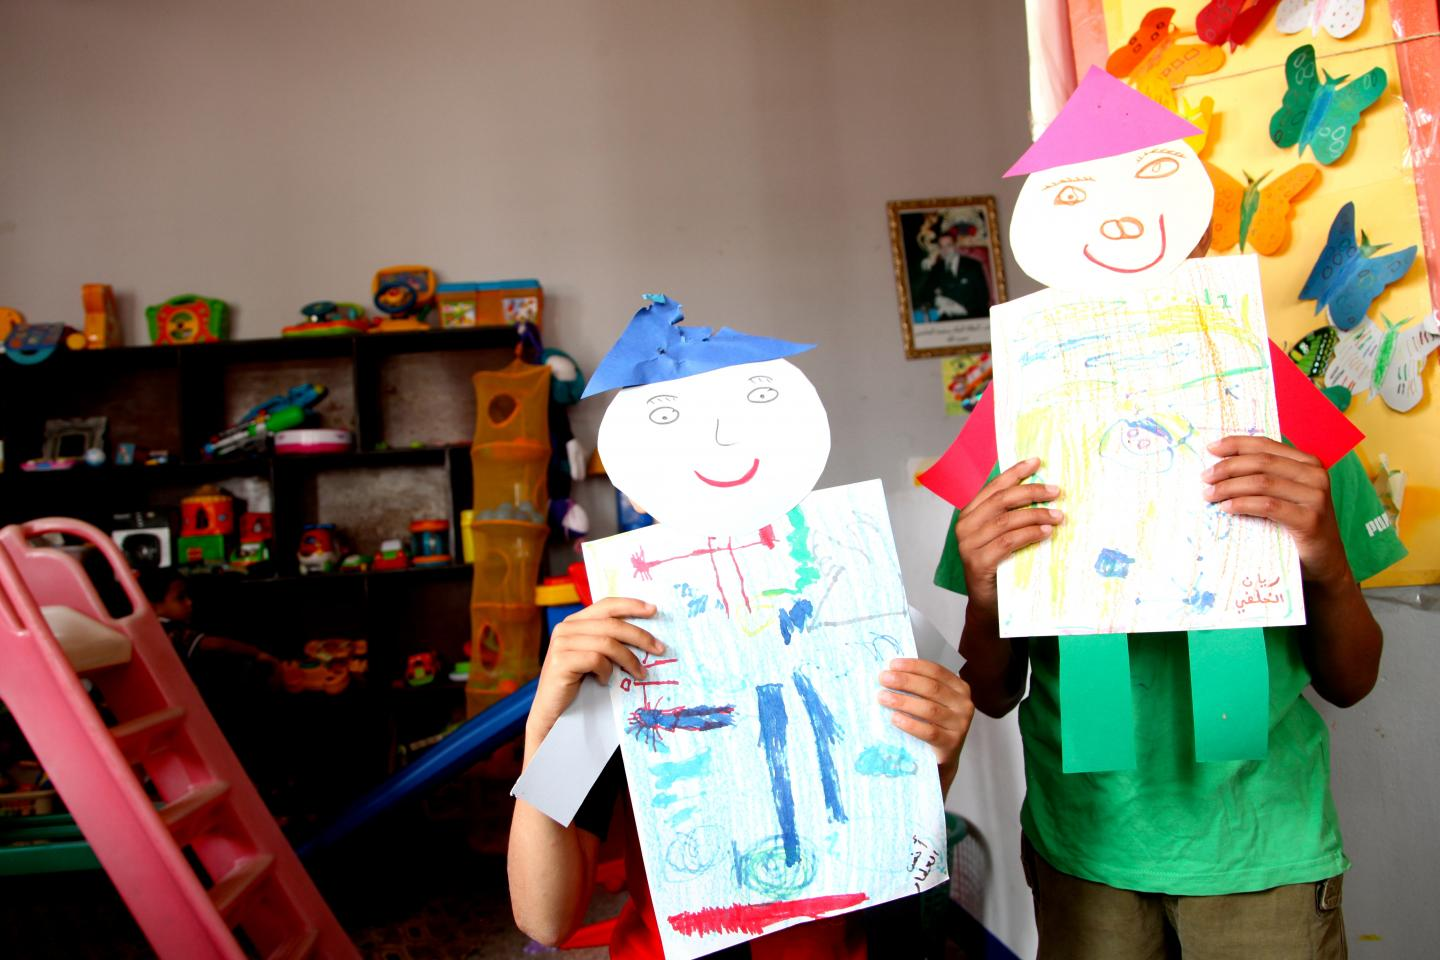 Two children holding a poster over their face